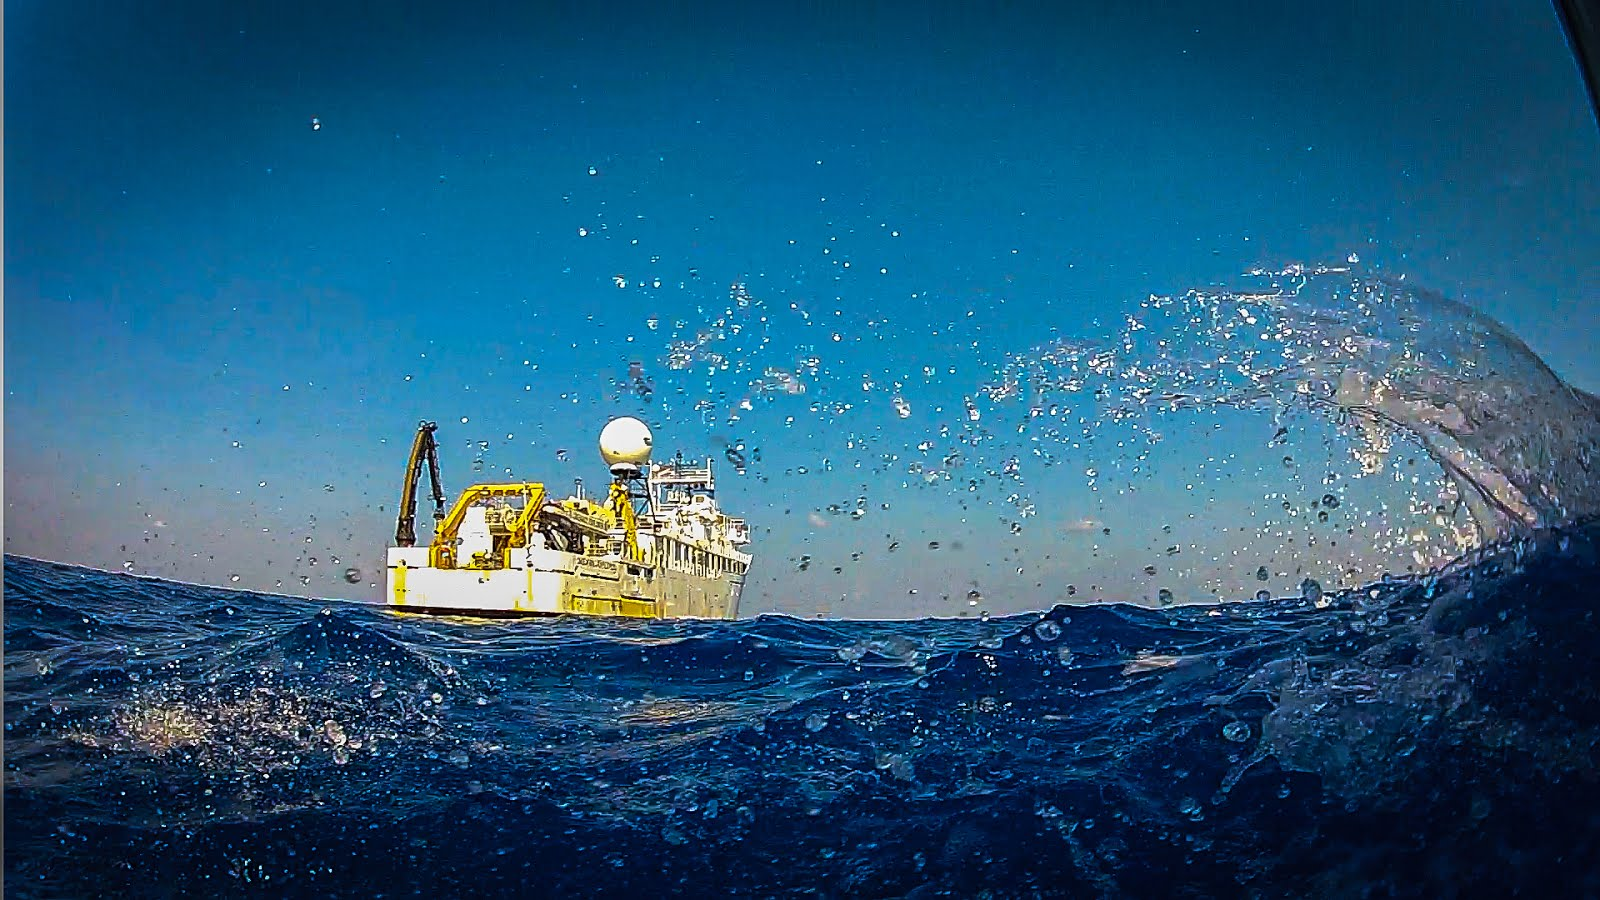 Image courtesy of the NOAA Office of Ocean Exploration and Research